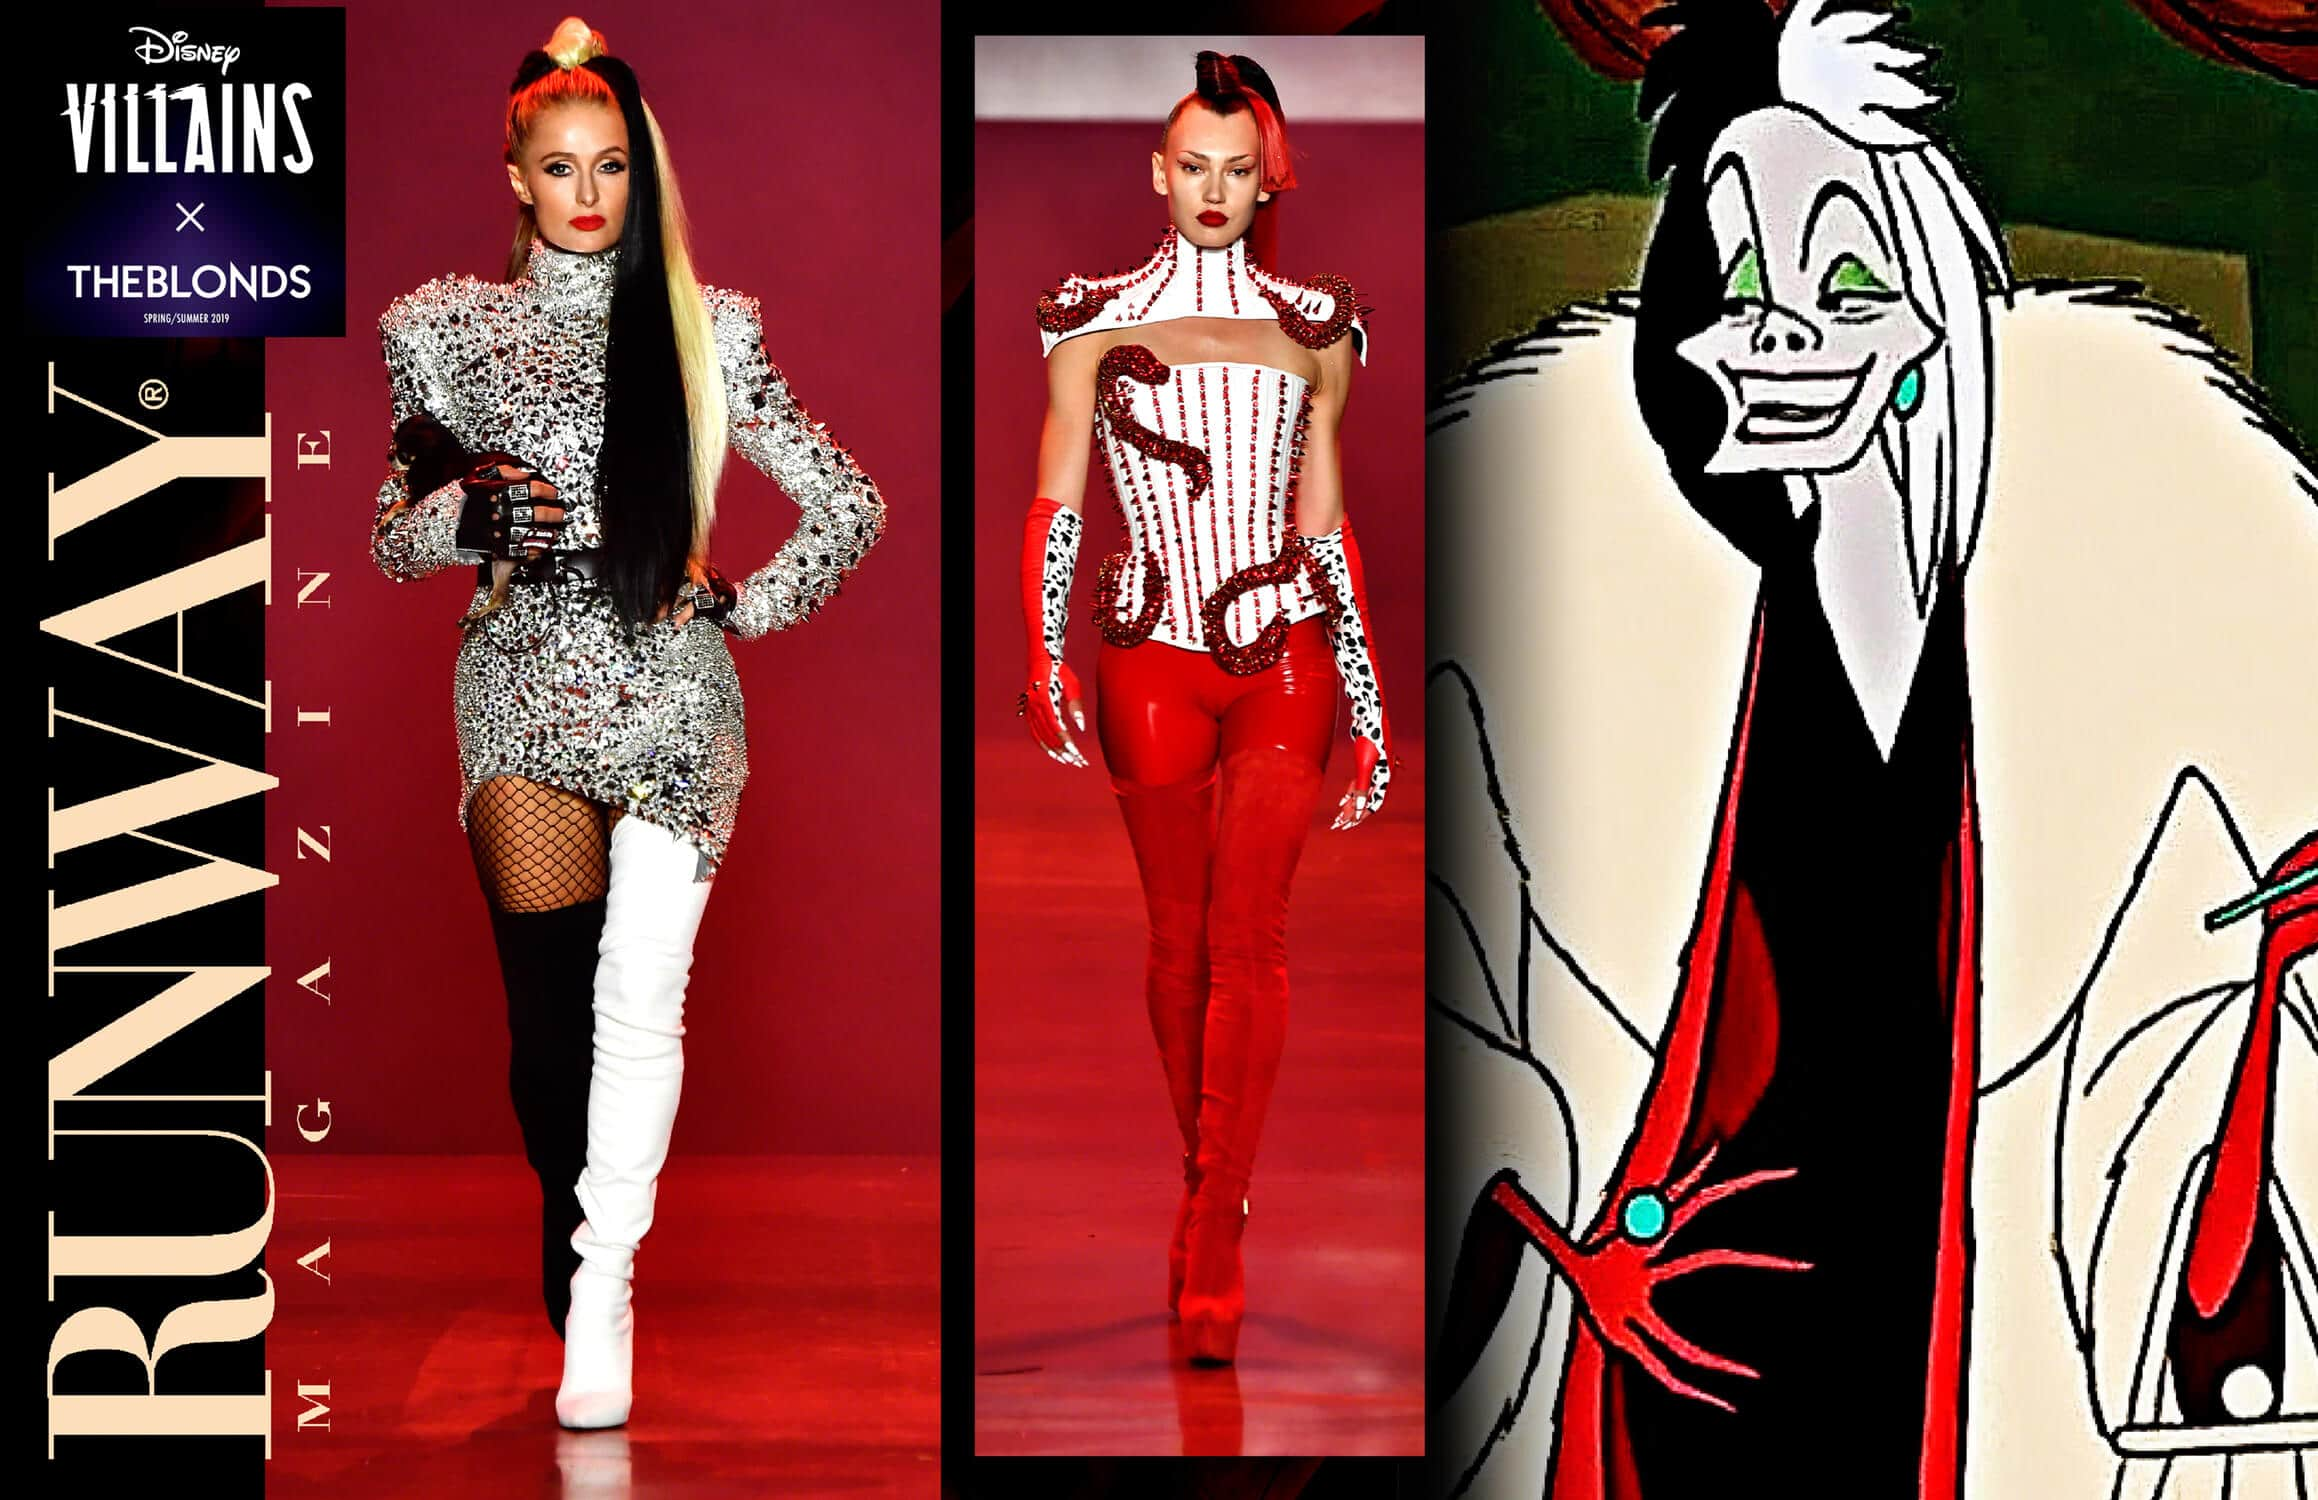 Disney Villains x The Blonds Spring-Summer 2019 New York by RUNWAY MAGAZINE